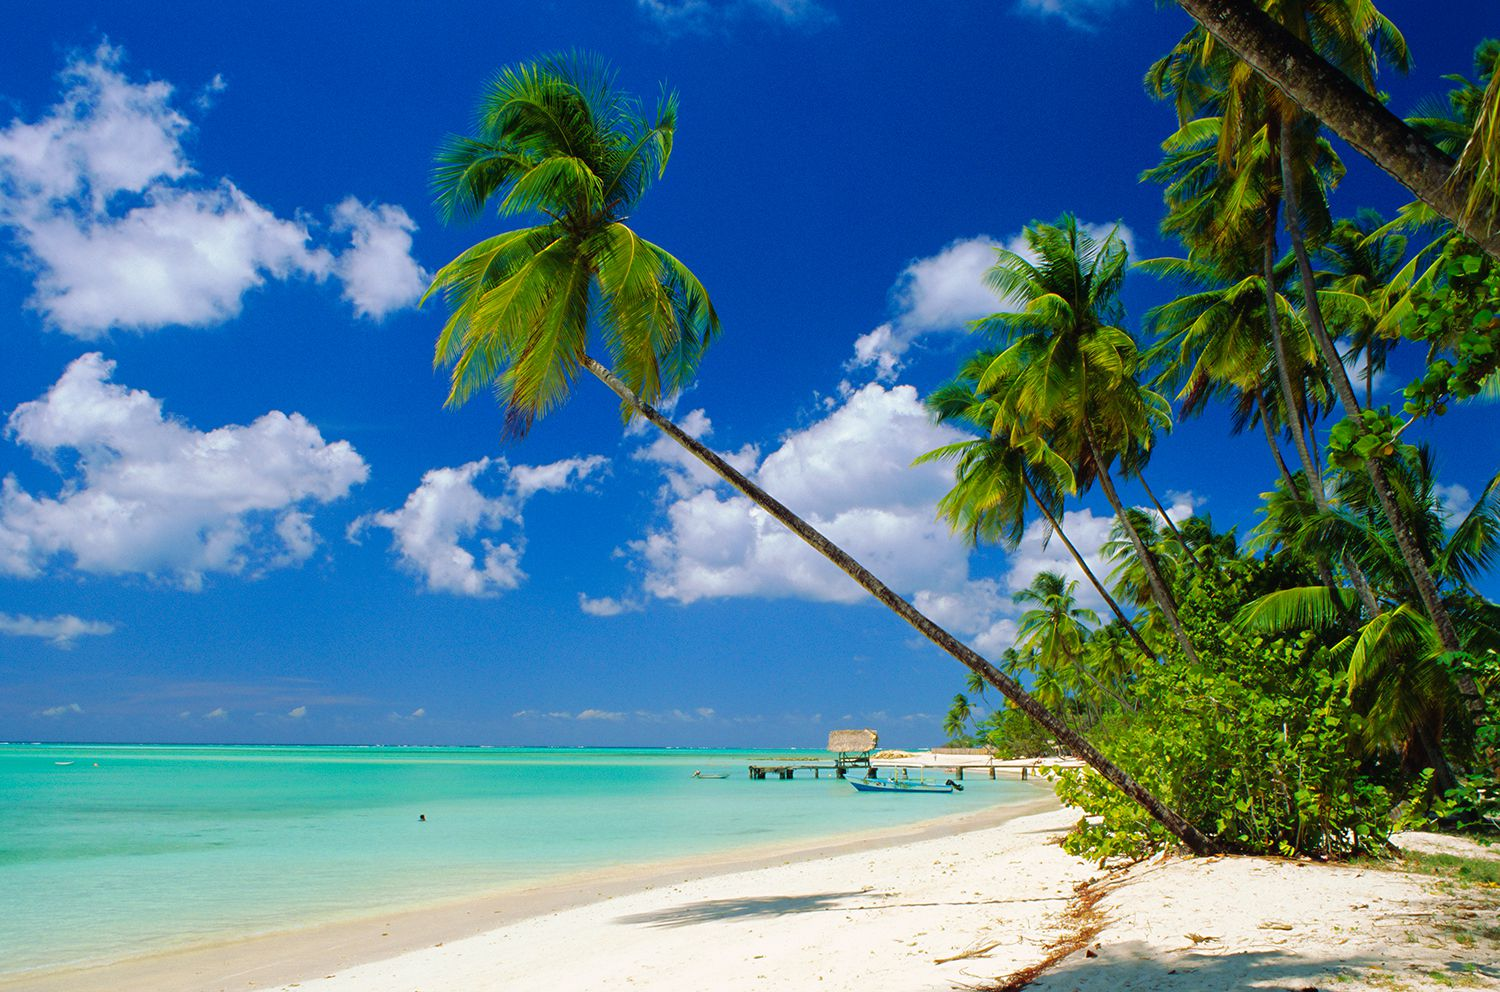 7 Best Beaches In Trinidad And Tobago